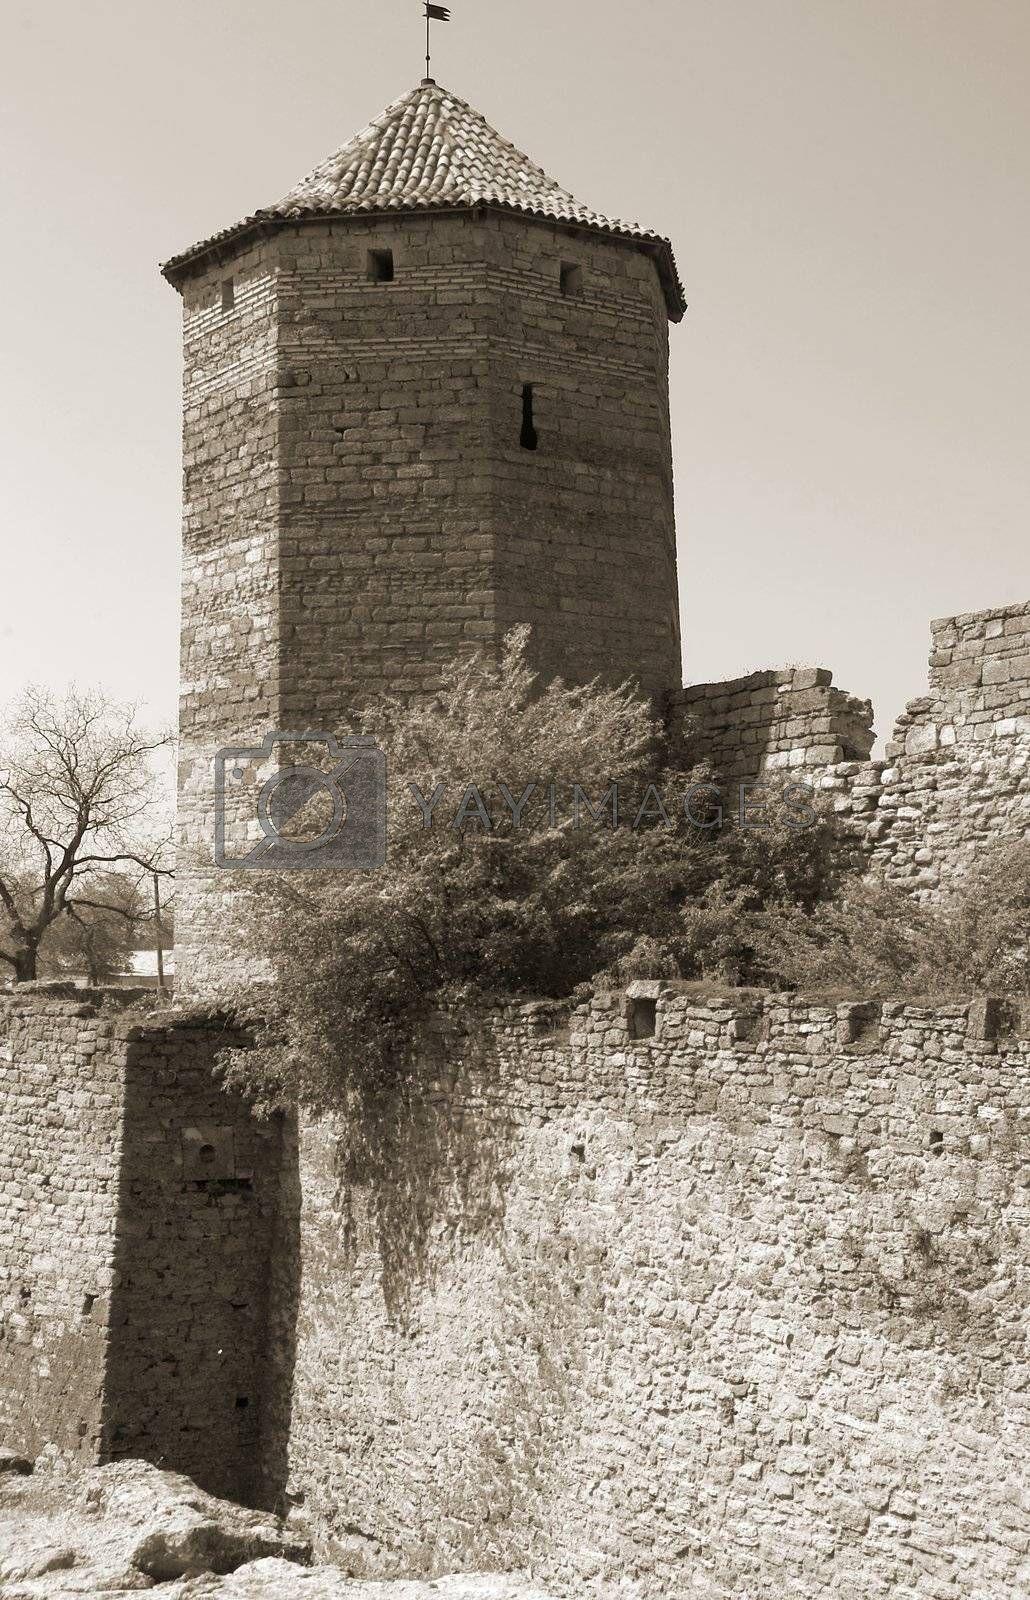 Watchtower in a fortress of the ancient city of Akkerman